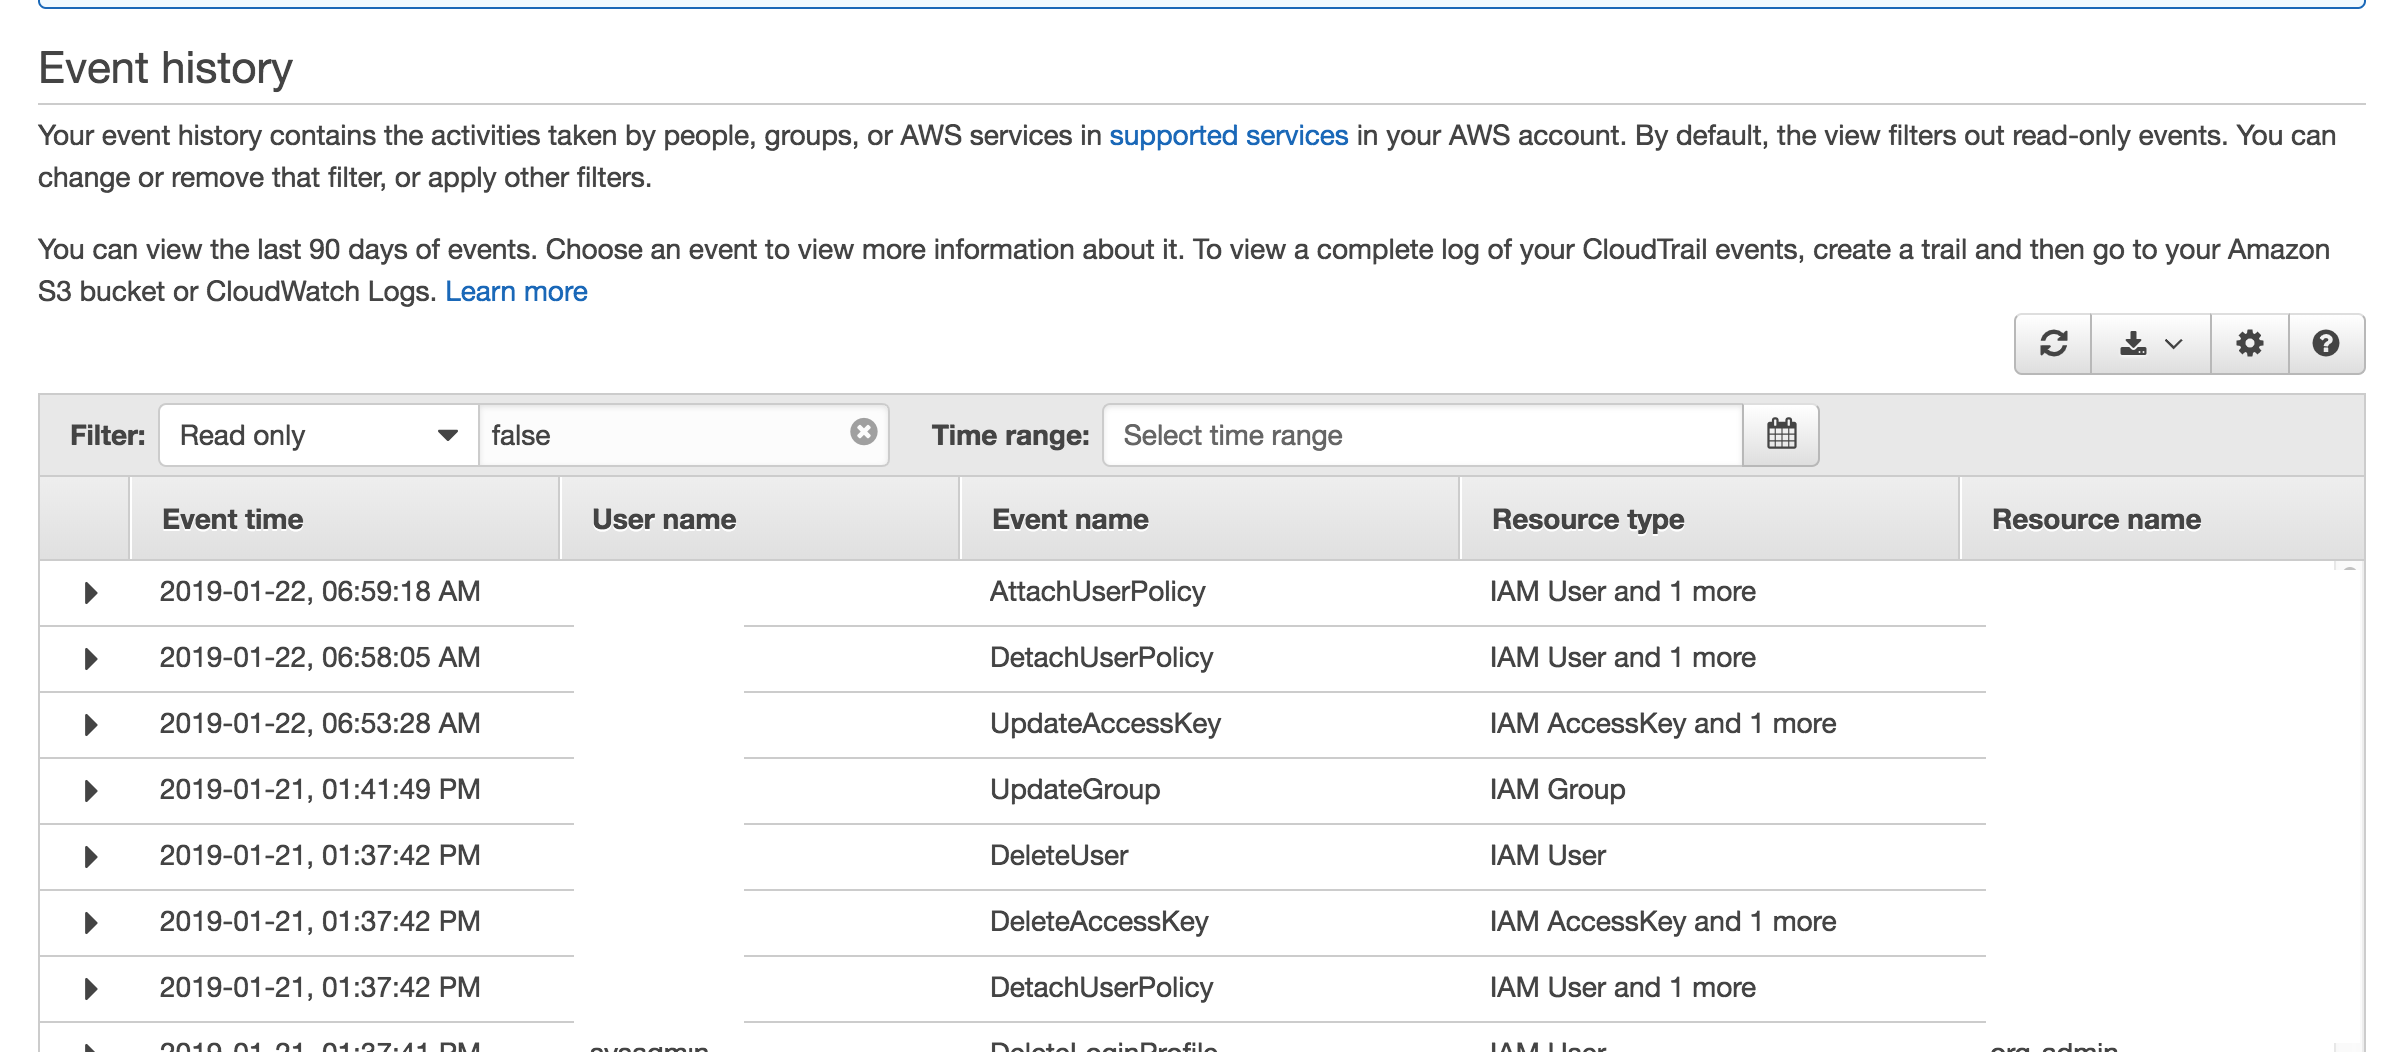 Auditing AWS events with CloudTrail - Playground for the mind